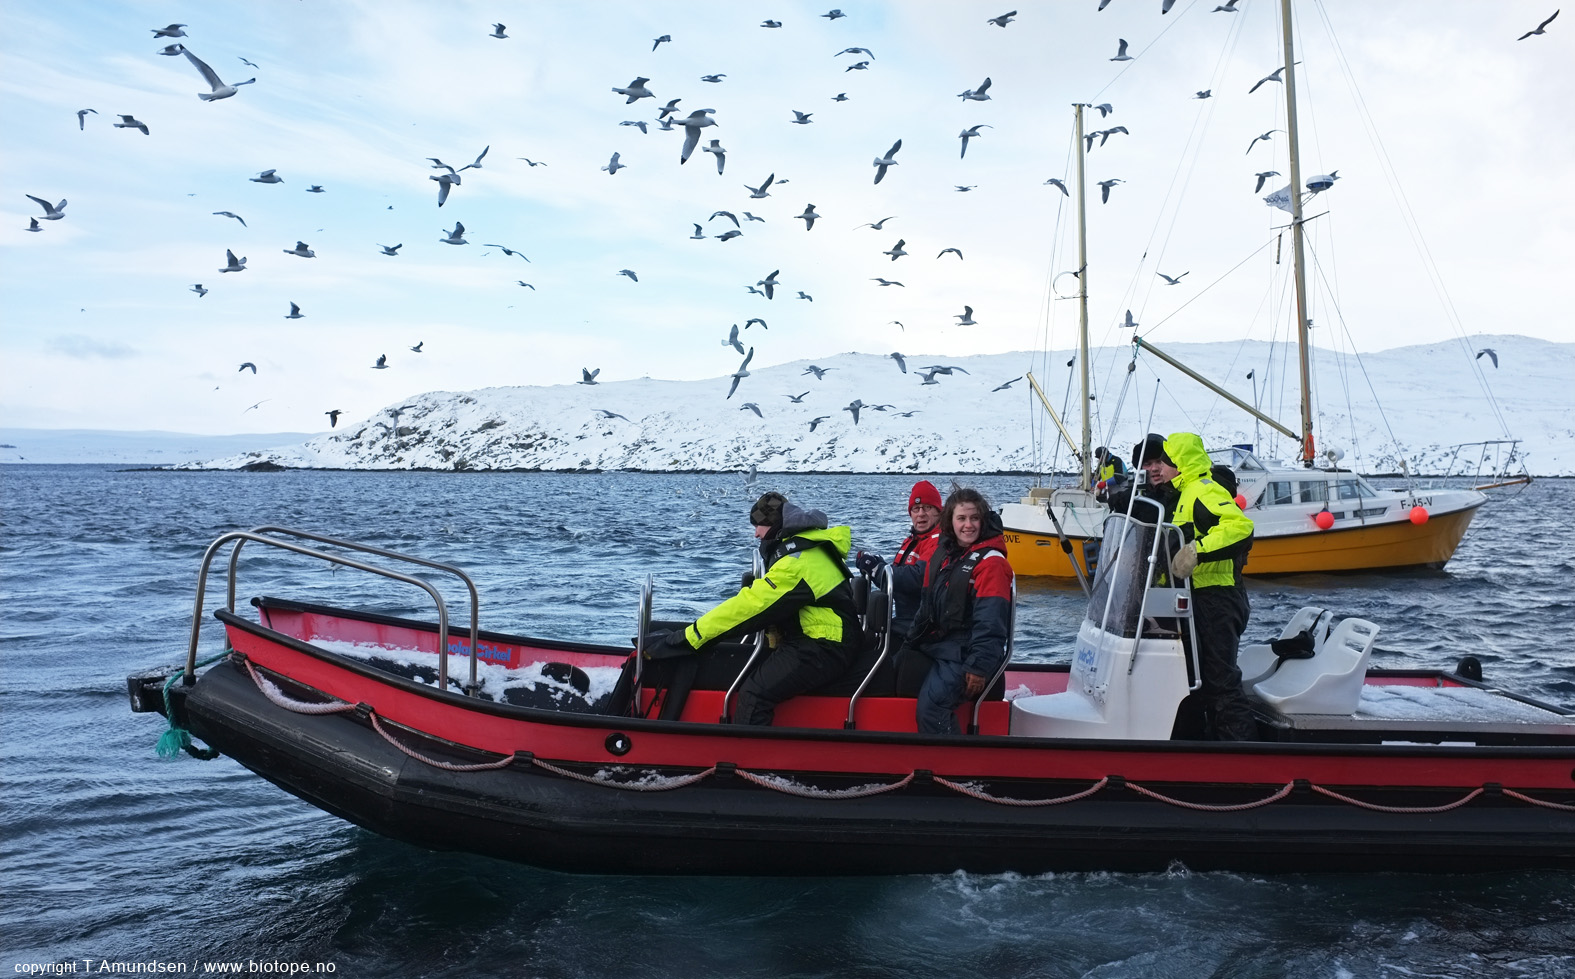 birders leaving Hornoya 2 march 2012 Amundsen Biotope.jpg